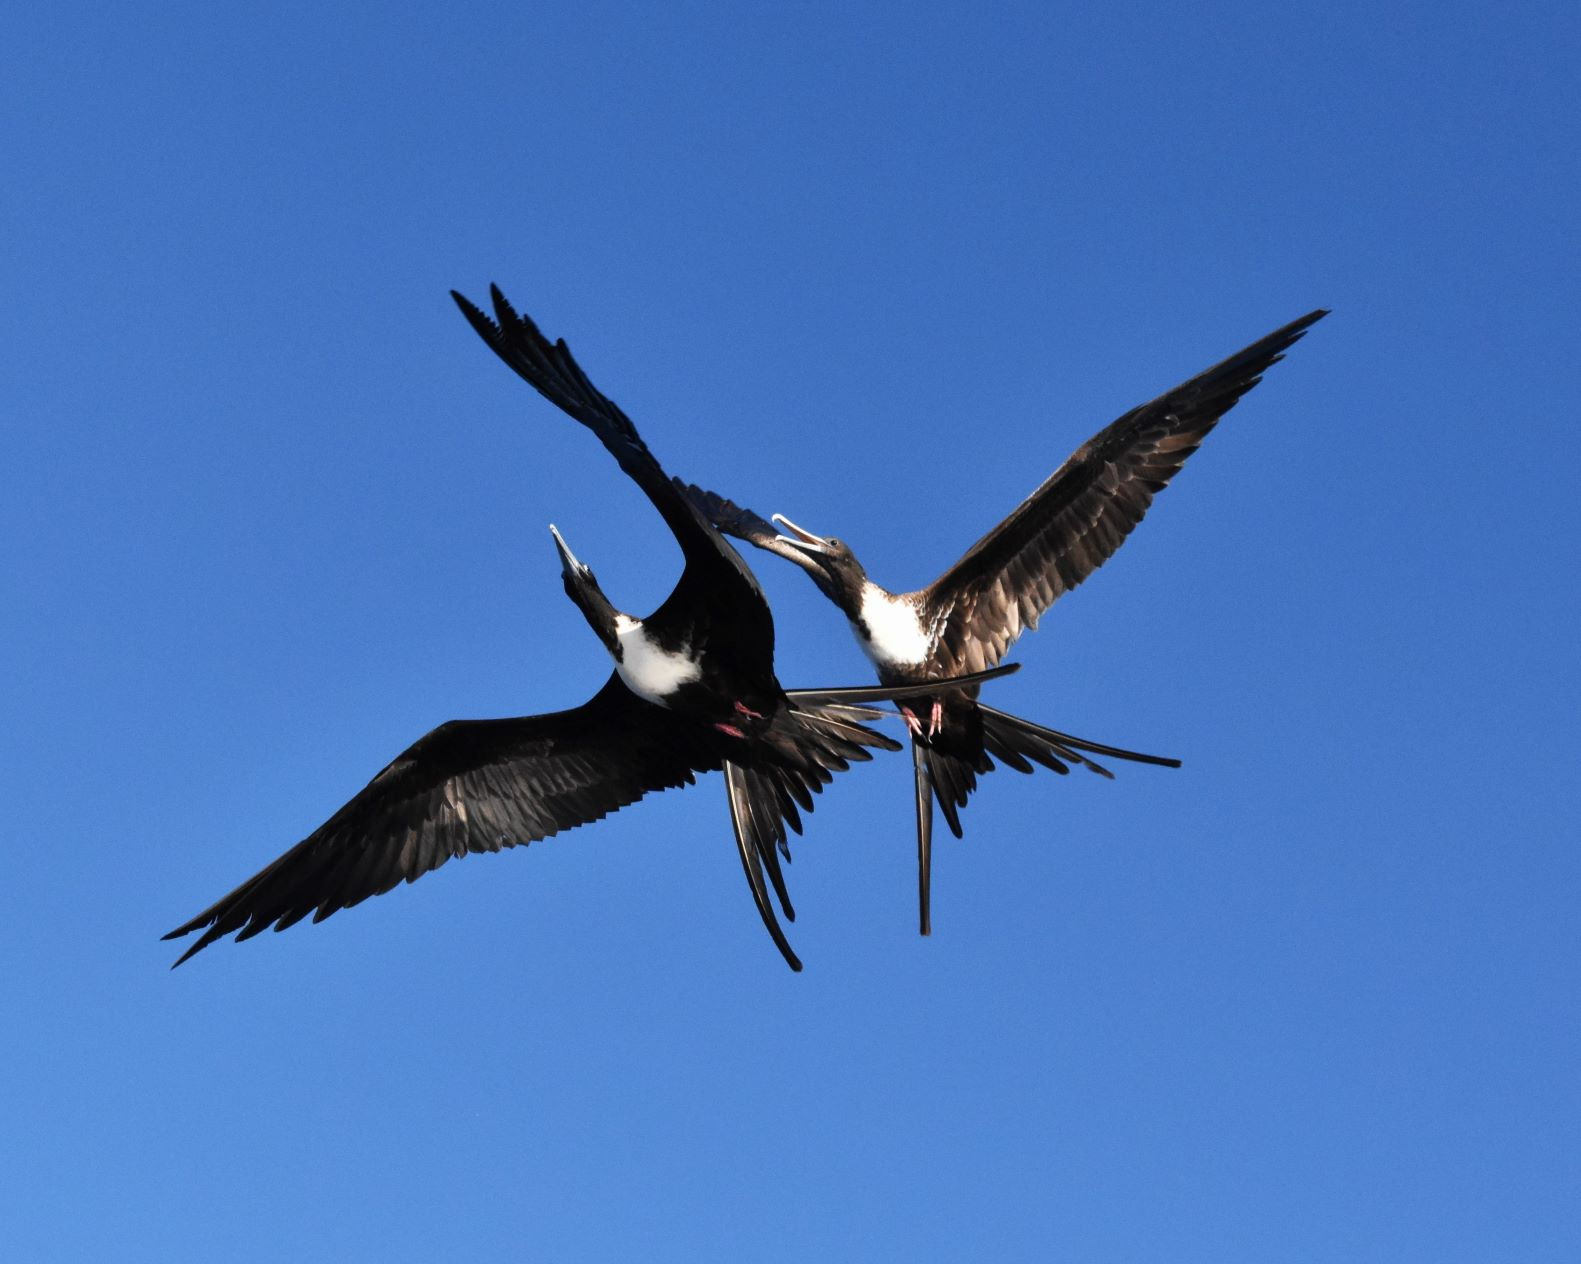 Nature 2nd place - Fighting Frigatebirds - Steve Morse